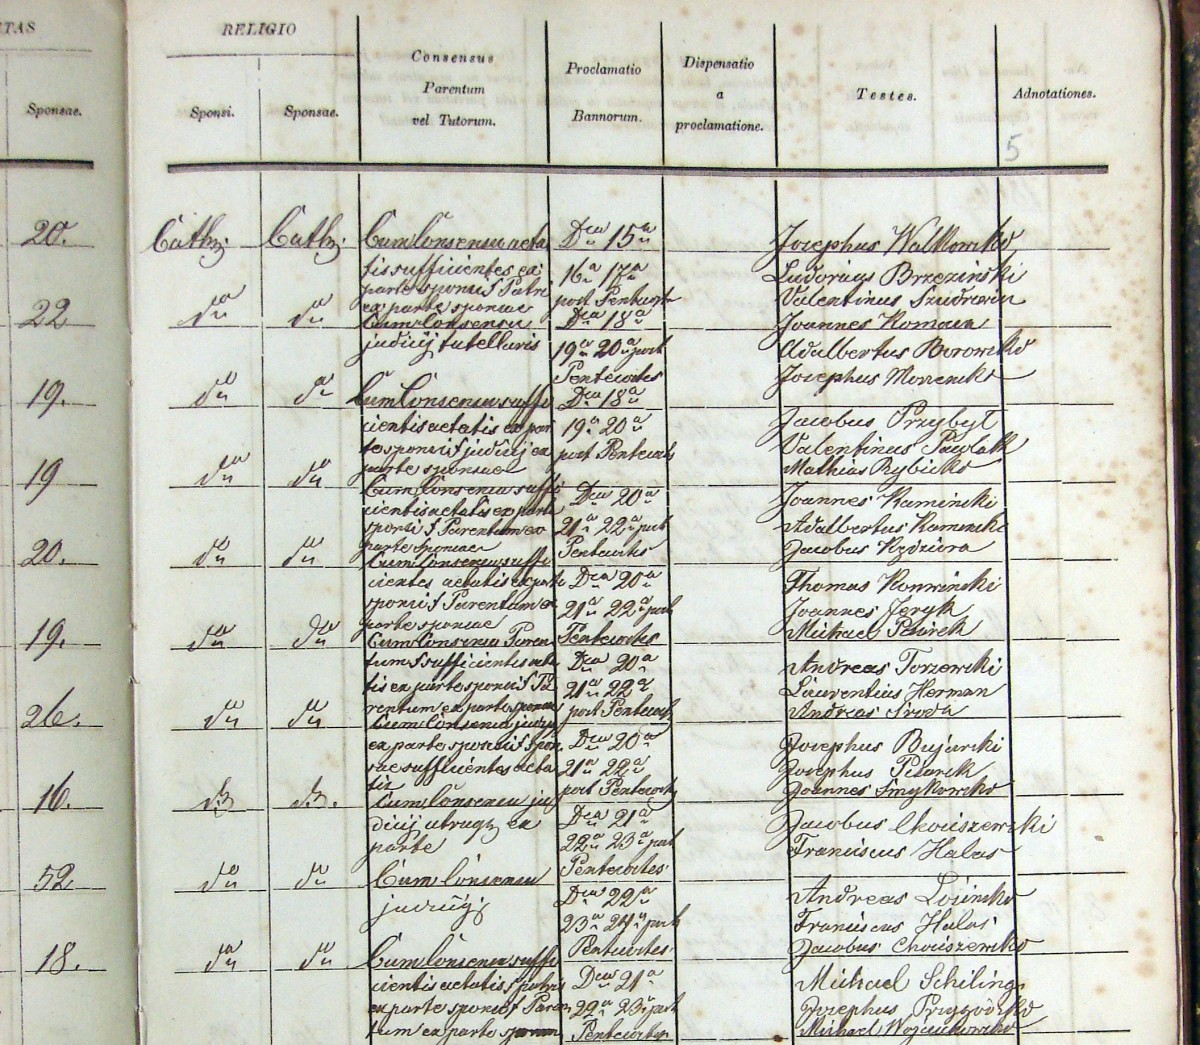 The column on the right shows the witnesses at each of the marriages listed.